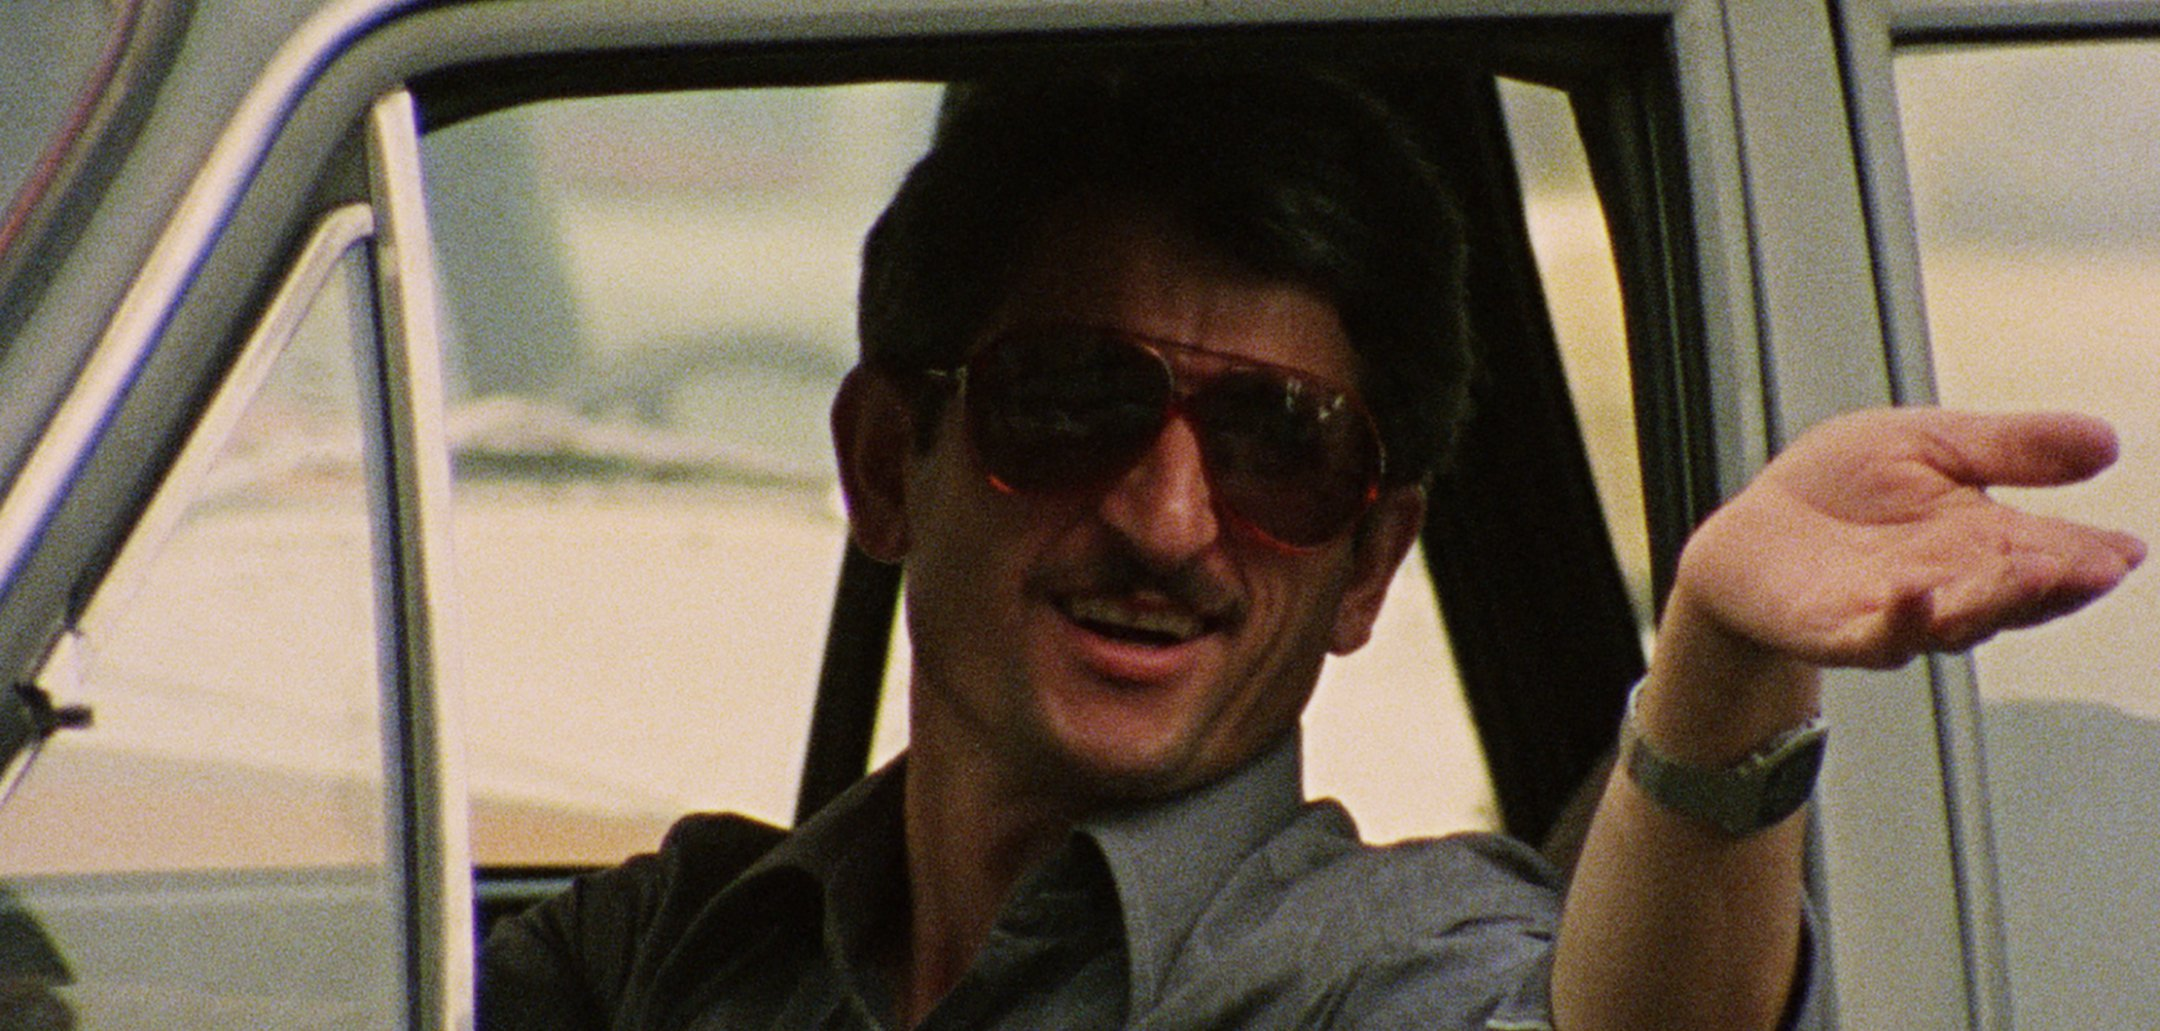 A man gestures out a car window in 'Fellow Citizen' (1983)